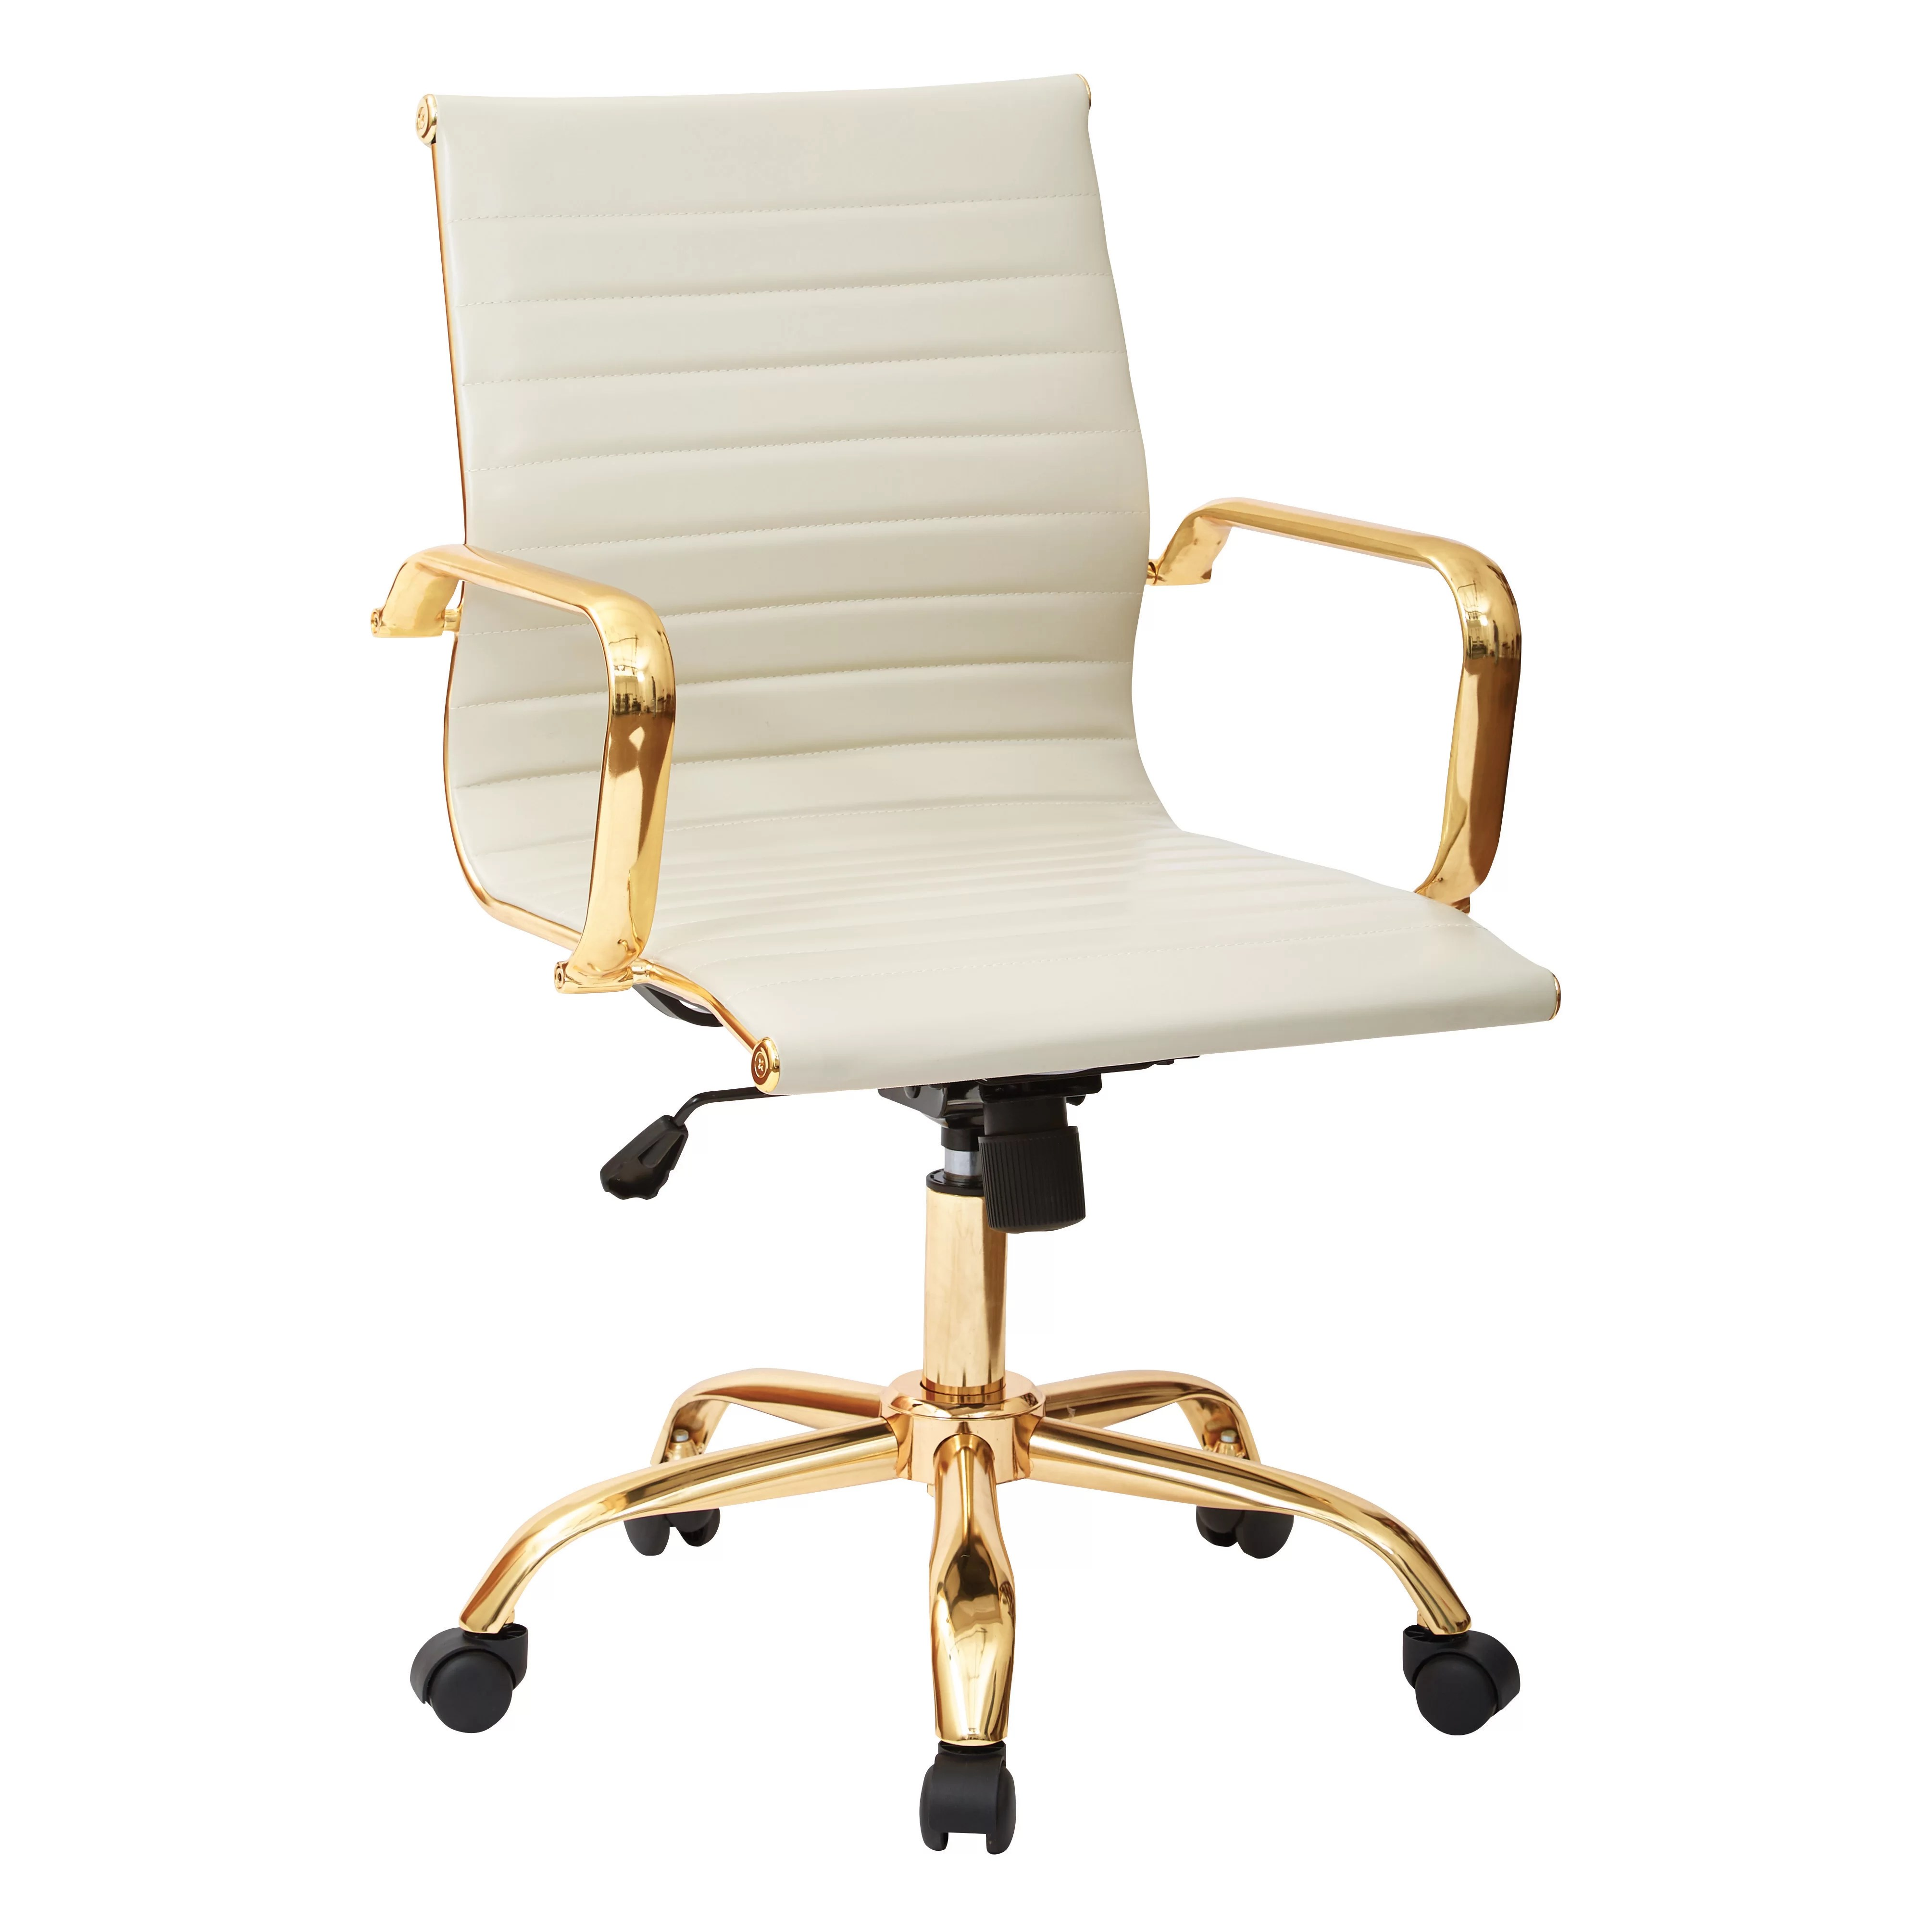 office chair gold taupe covers star mid back executive with arms